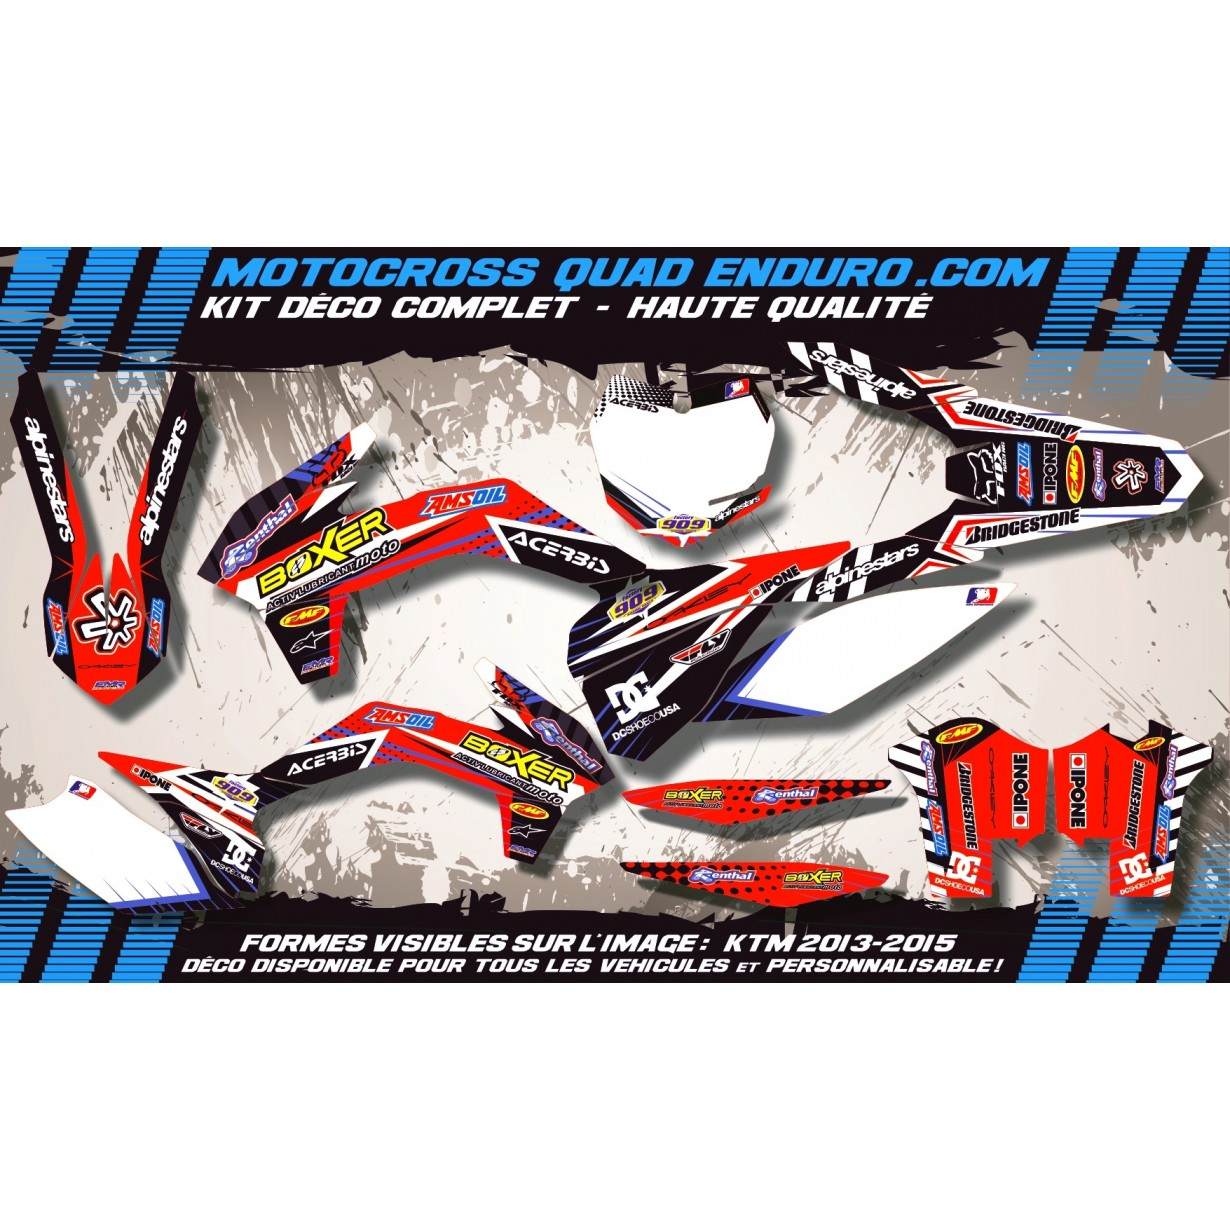 KIT DÉCO Perso 250 CRF-L 13-15 BOXER MA1A